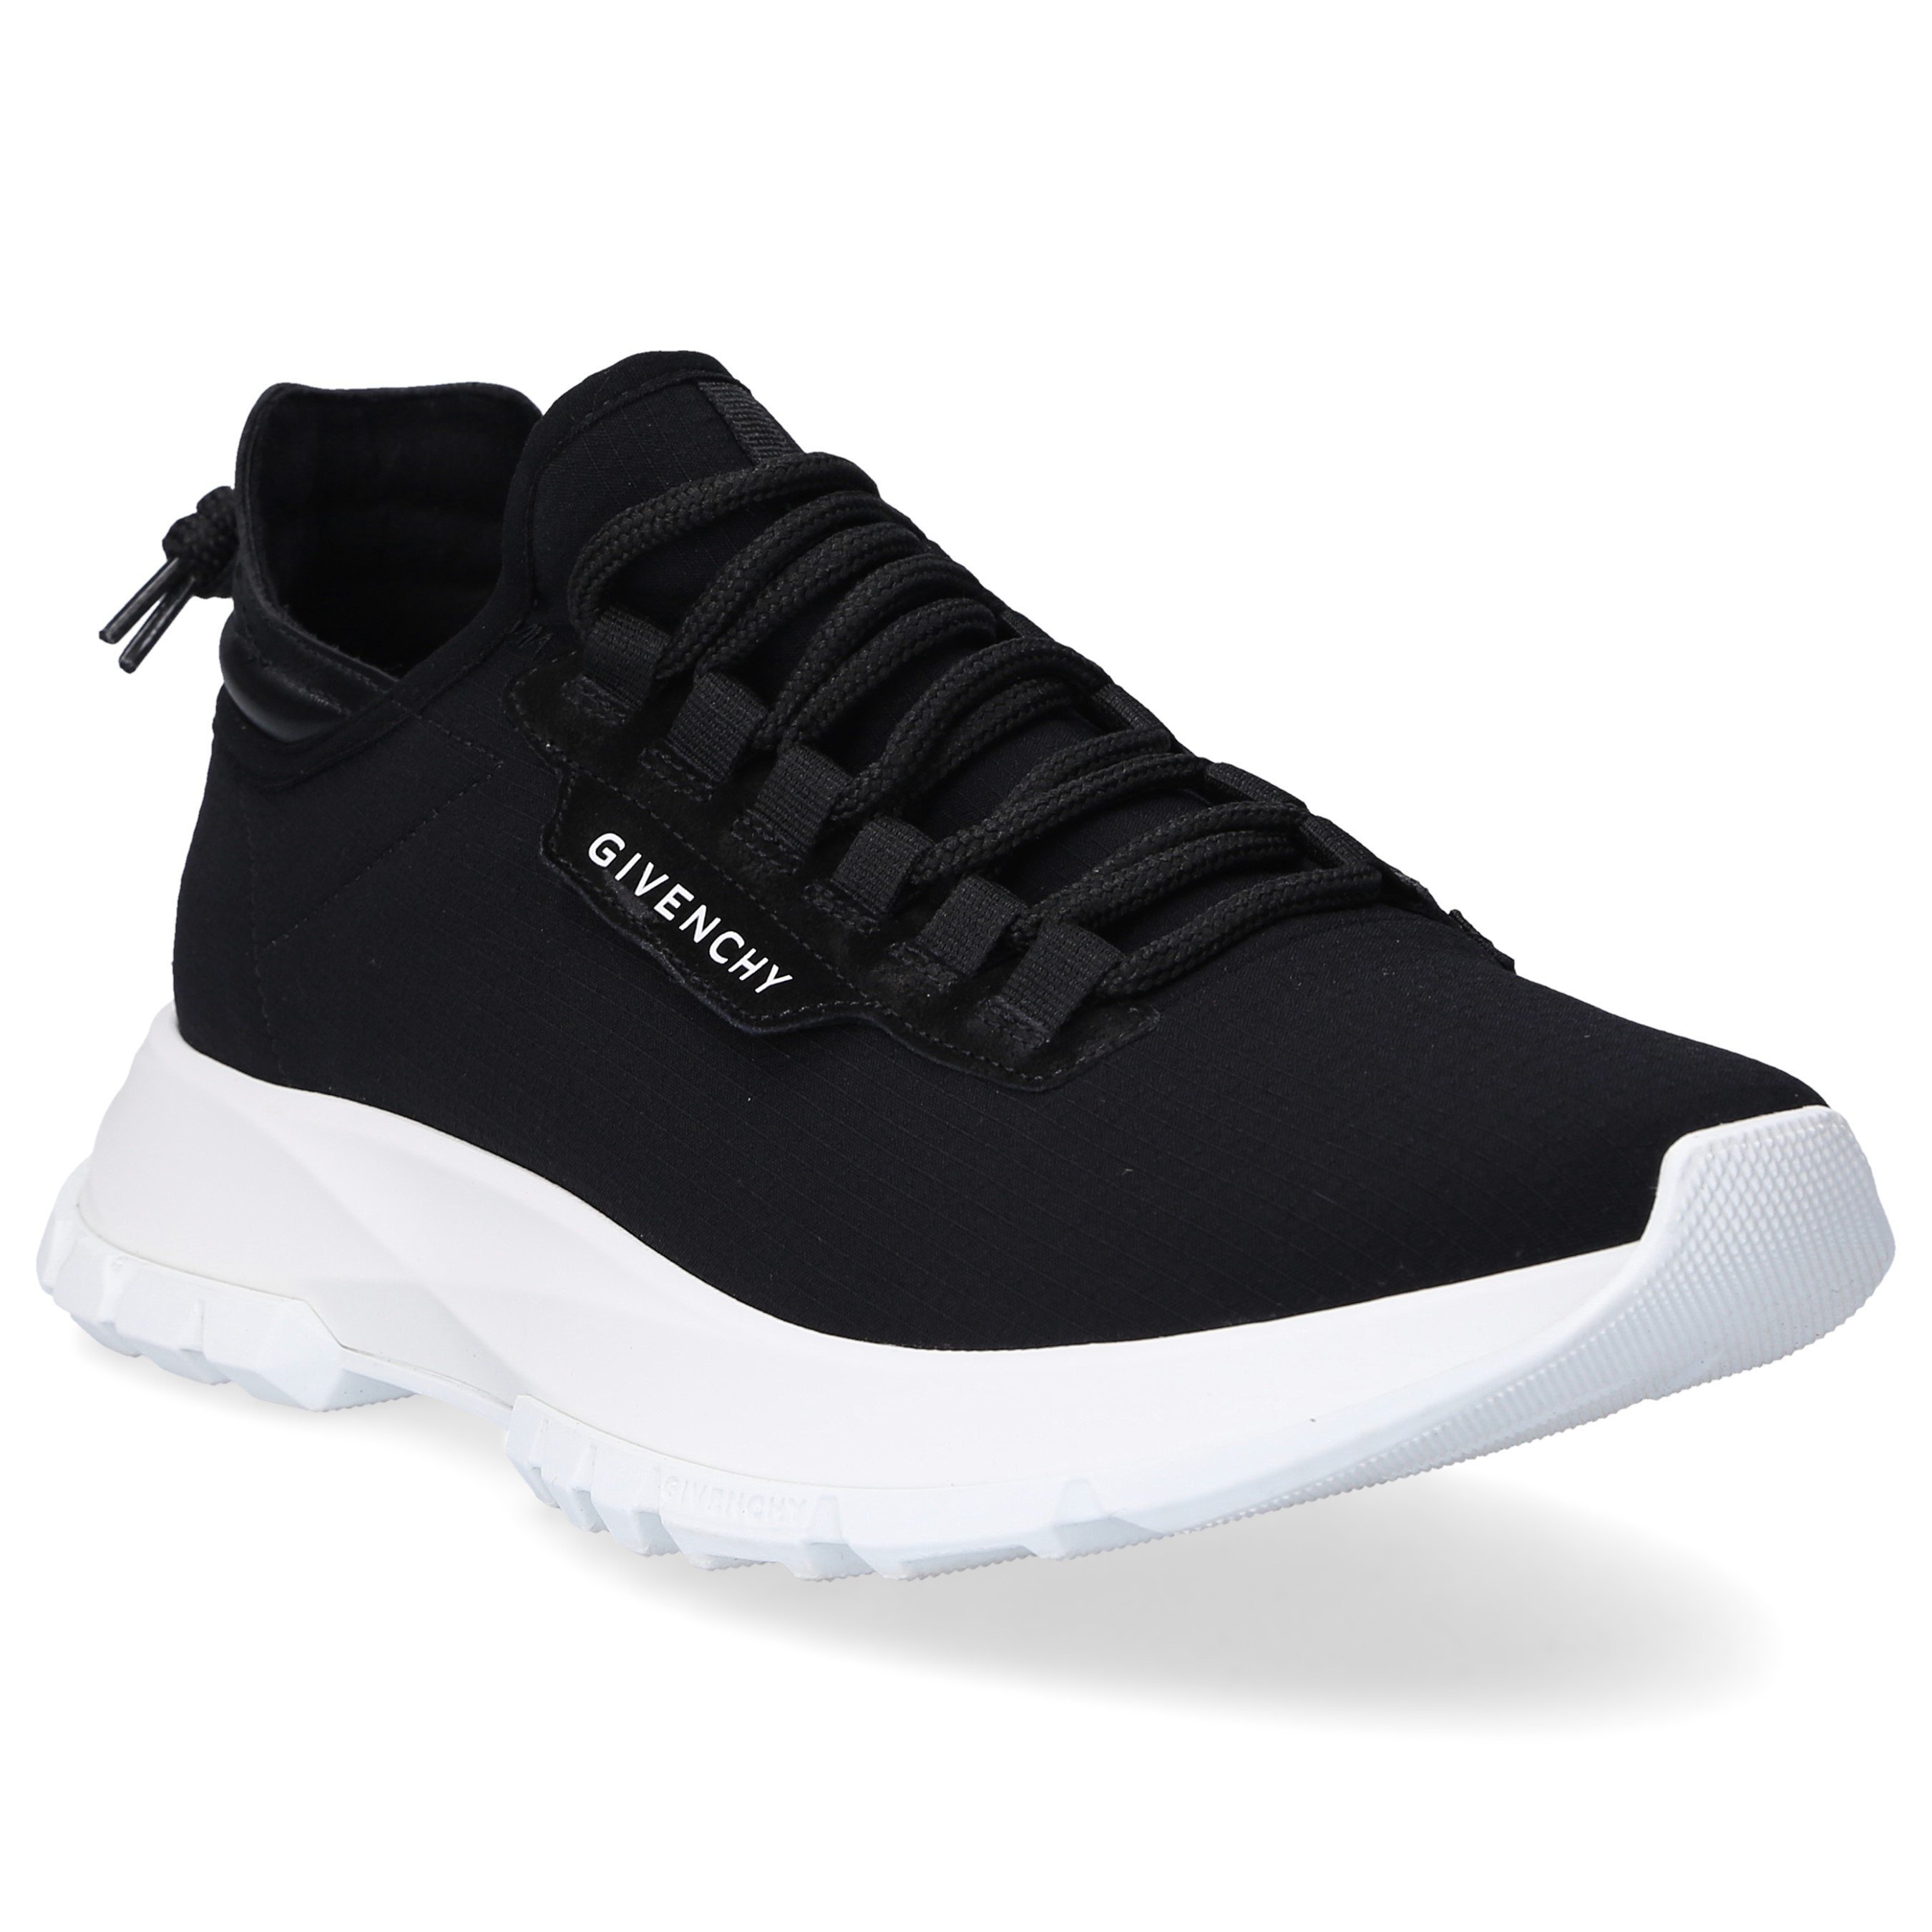 GIVENCHY Low tops LOW-TOP SNEAKERS SPECTRE SNEAKER POLYESTER LOGO BLACK